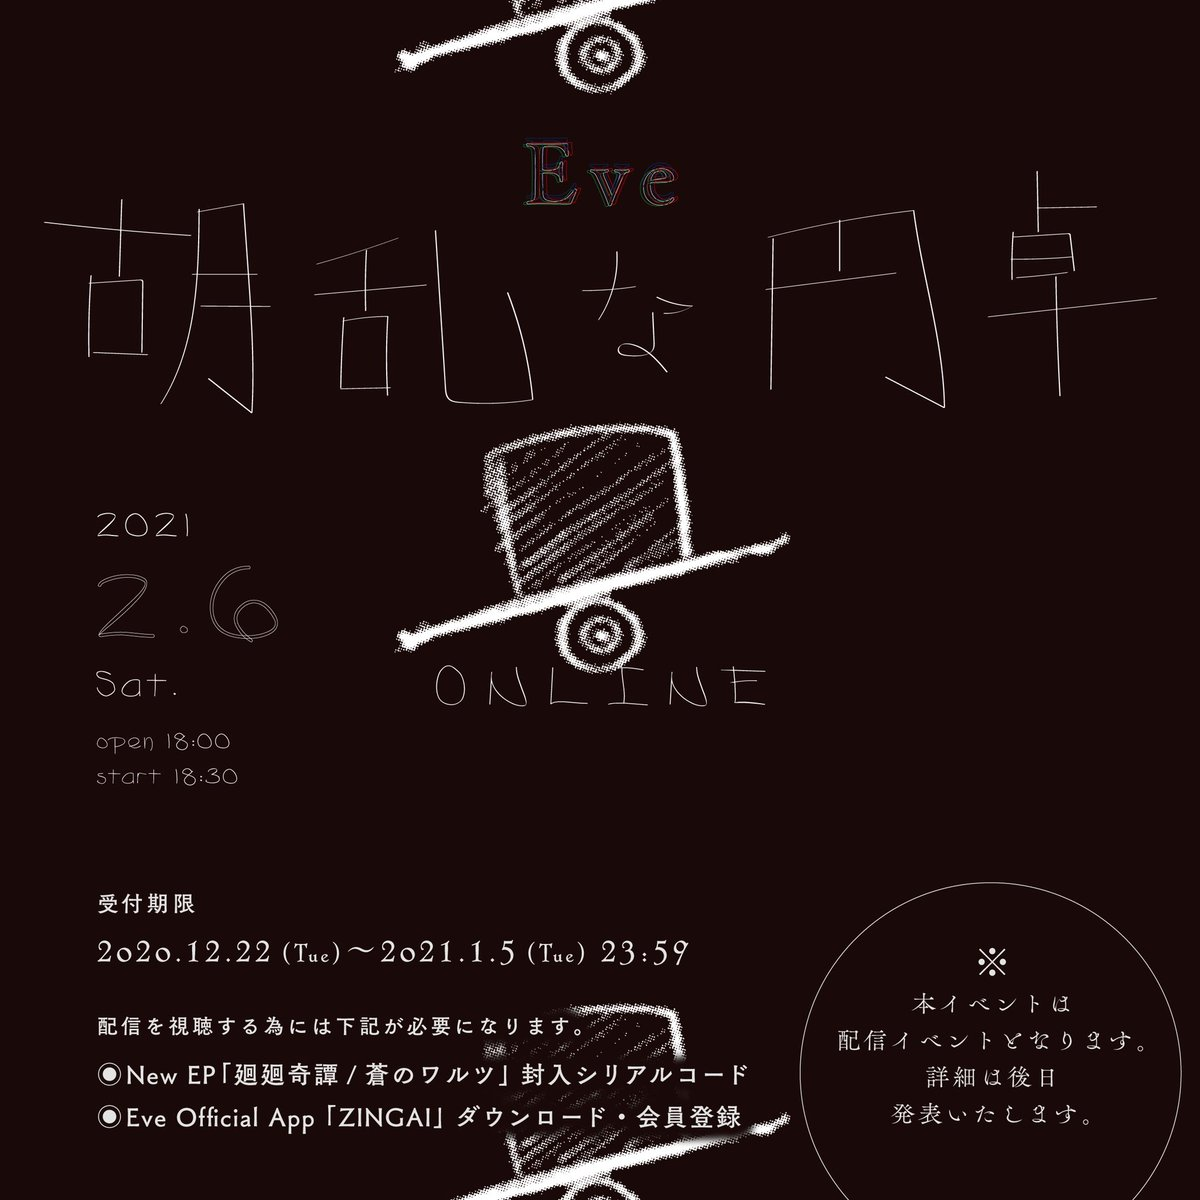 Eve OFFICIALさんの投稿画像